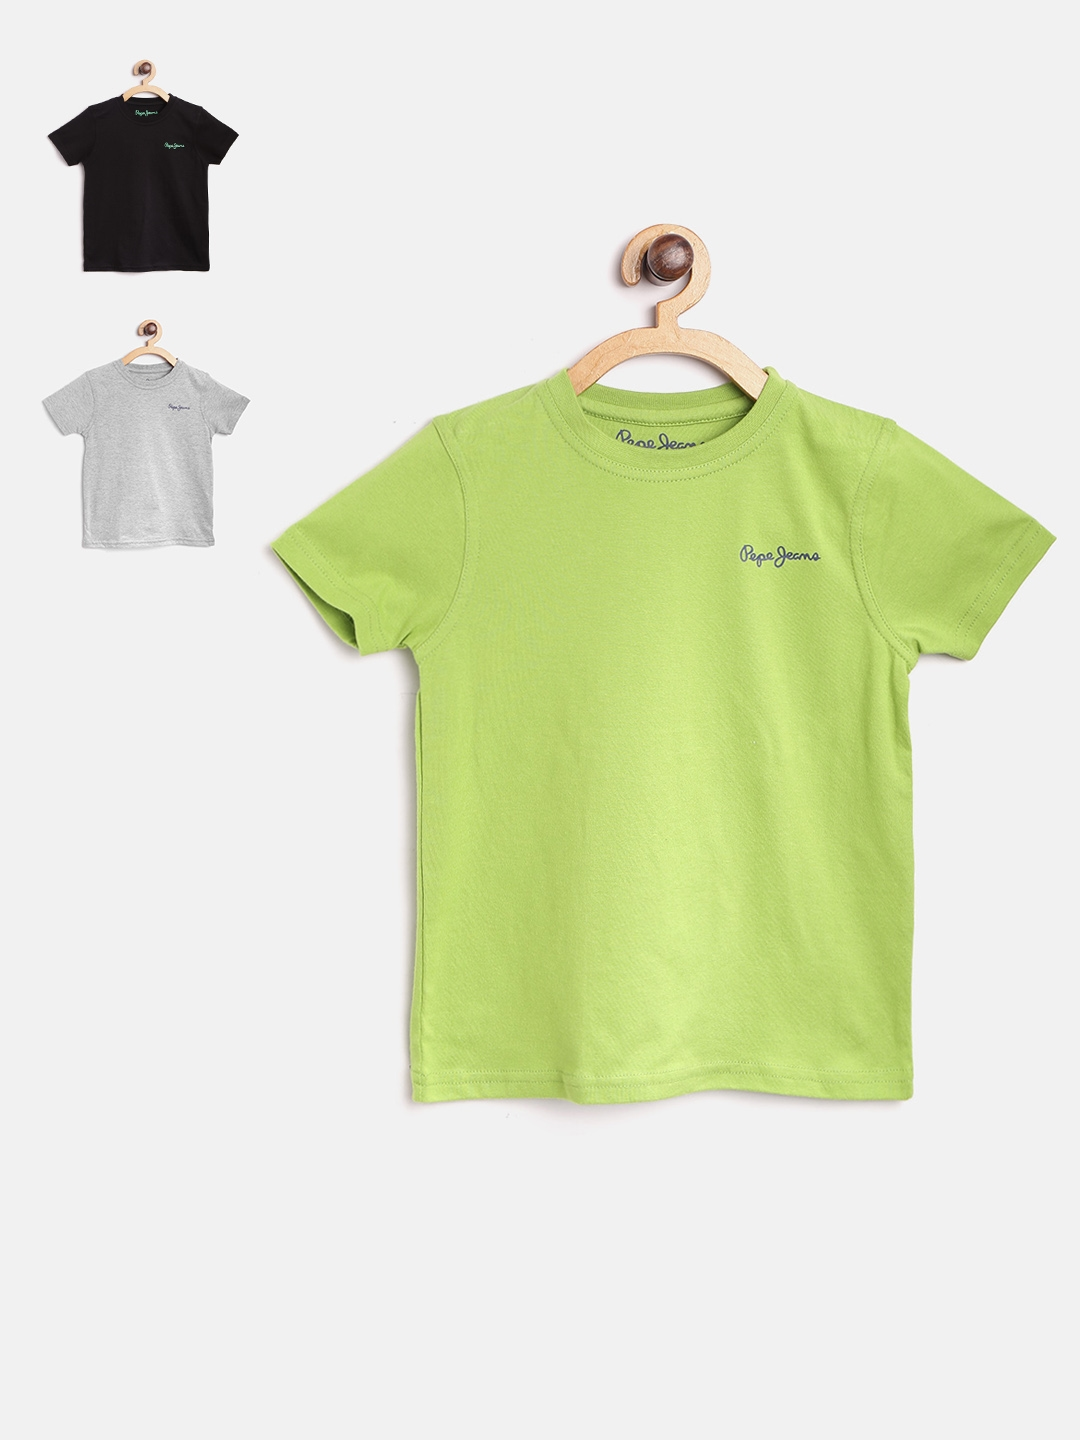 Buy Pepe Jeans Boys Pack Of 3 Round Neck T Shirt Tshirts For Boys 4042233 Myntra